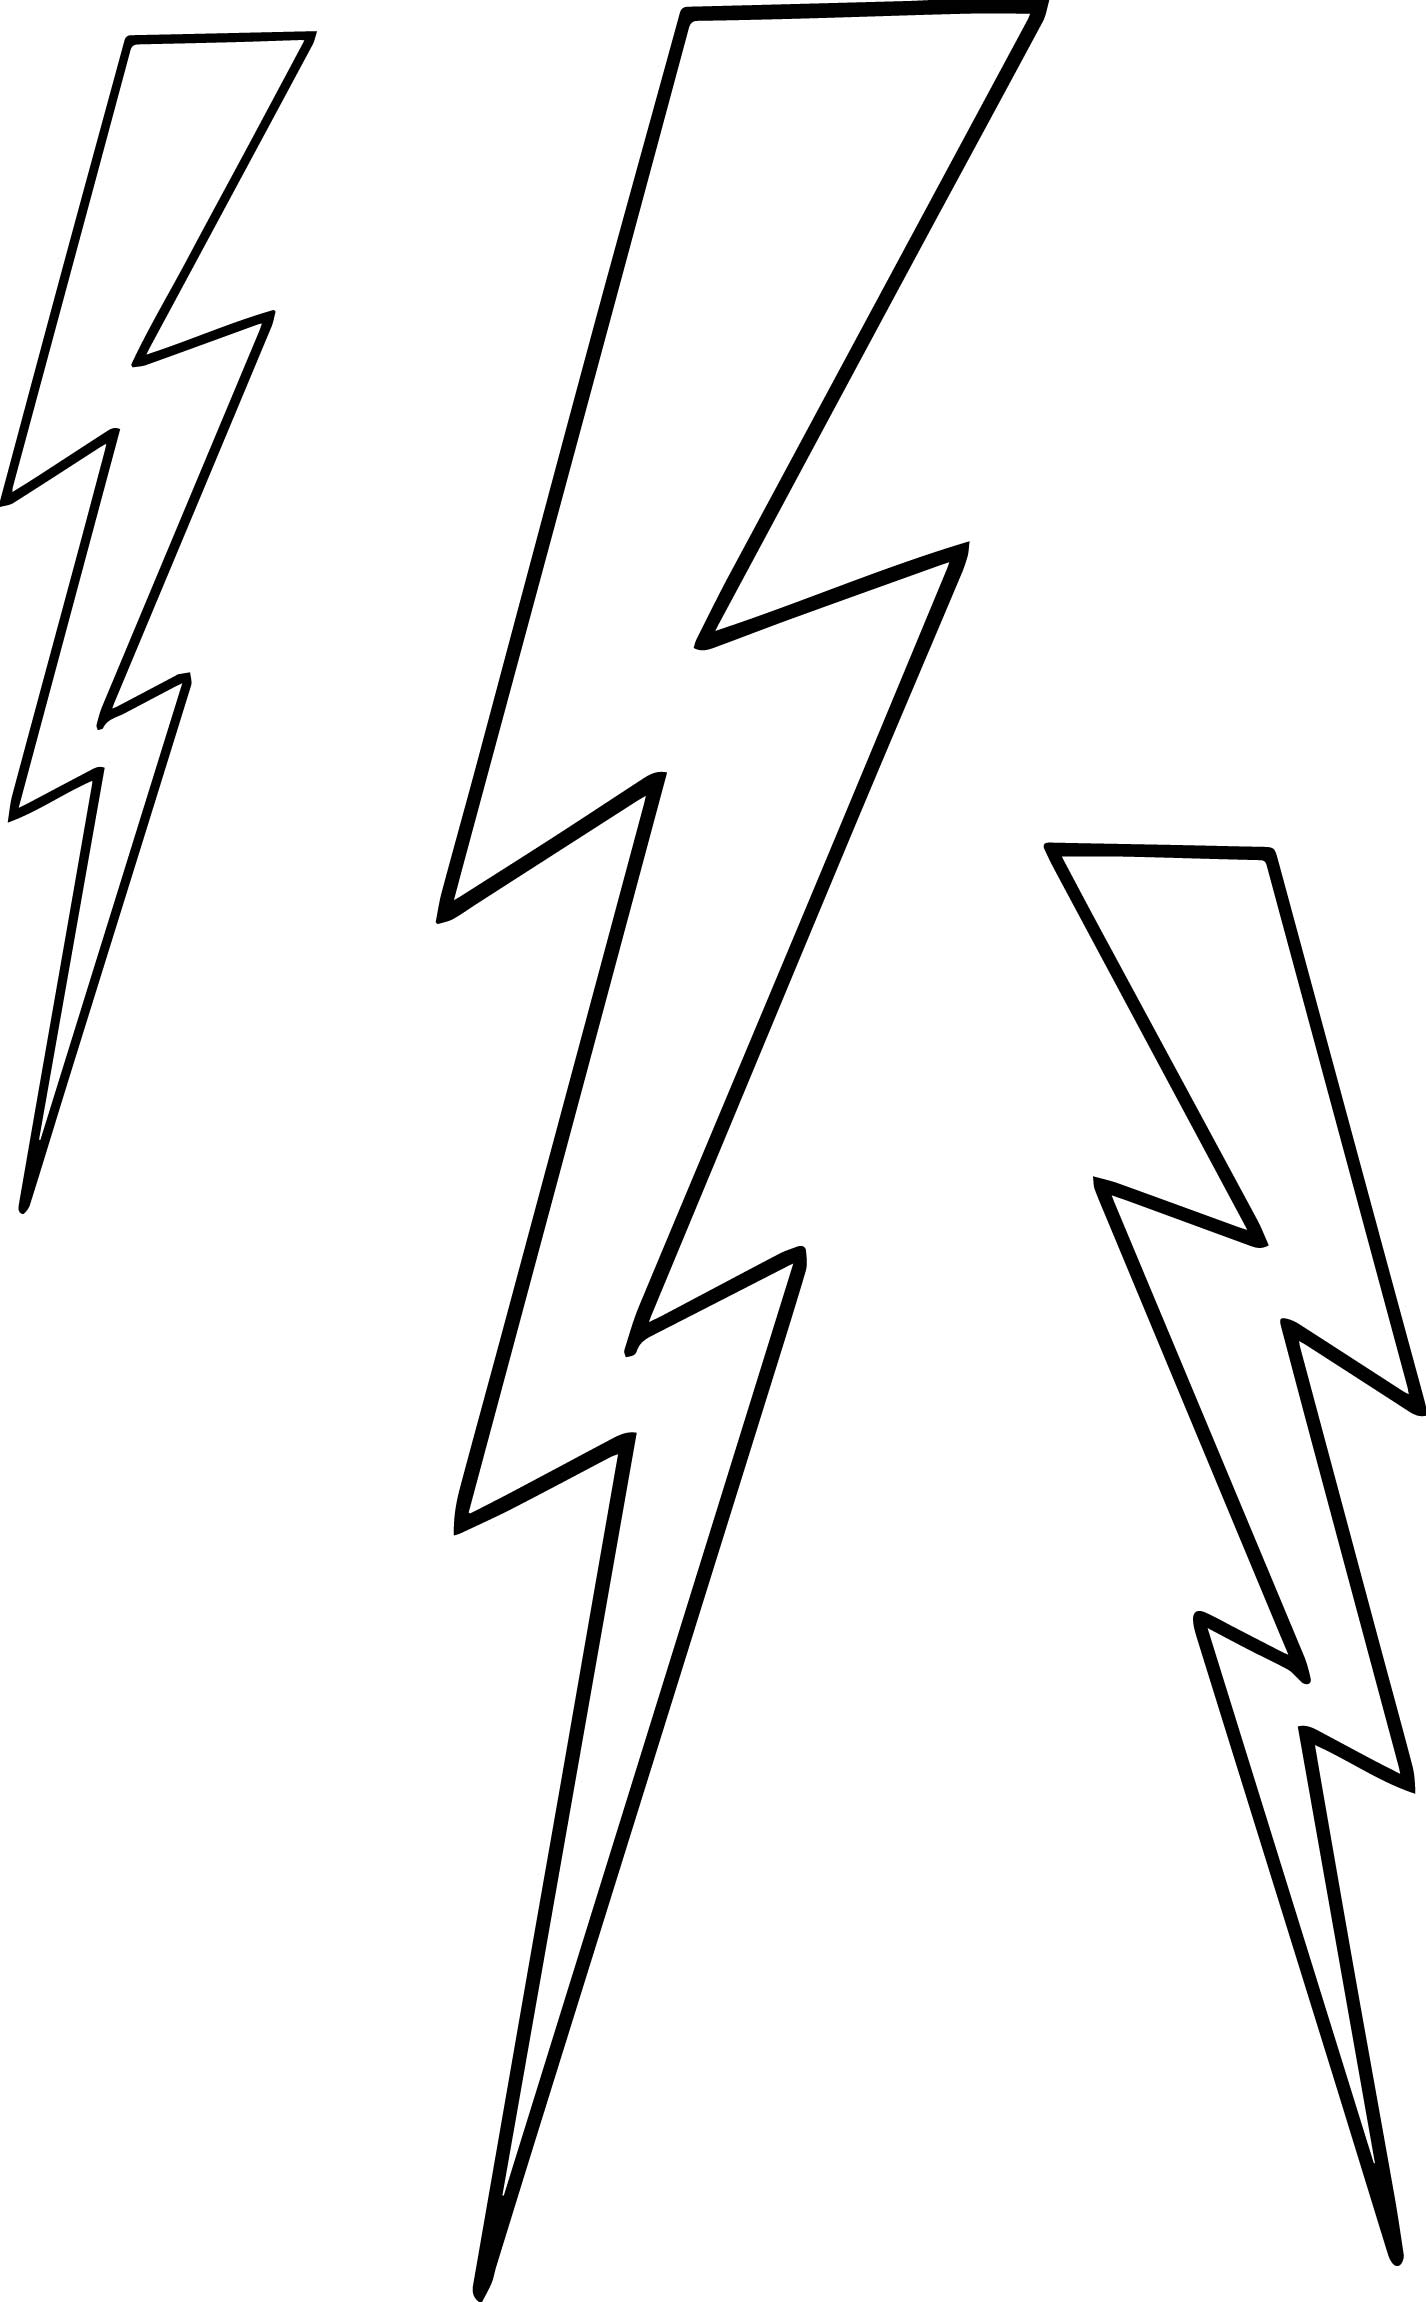 lightning bolt coloring pages | Three Lightningbolt Coloring Page | Wecoloringpage.com